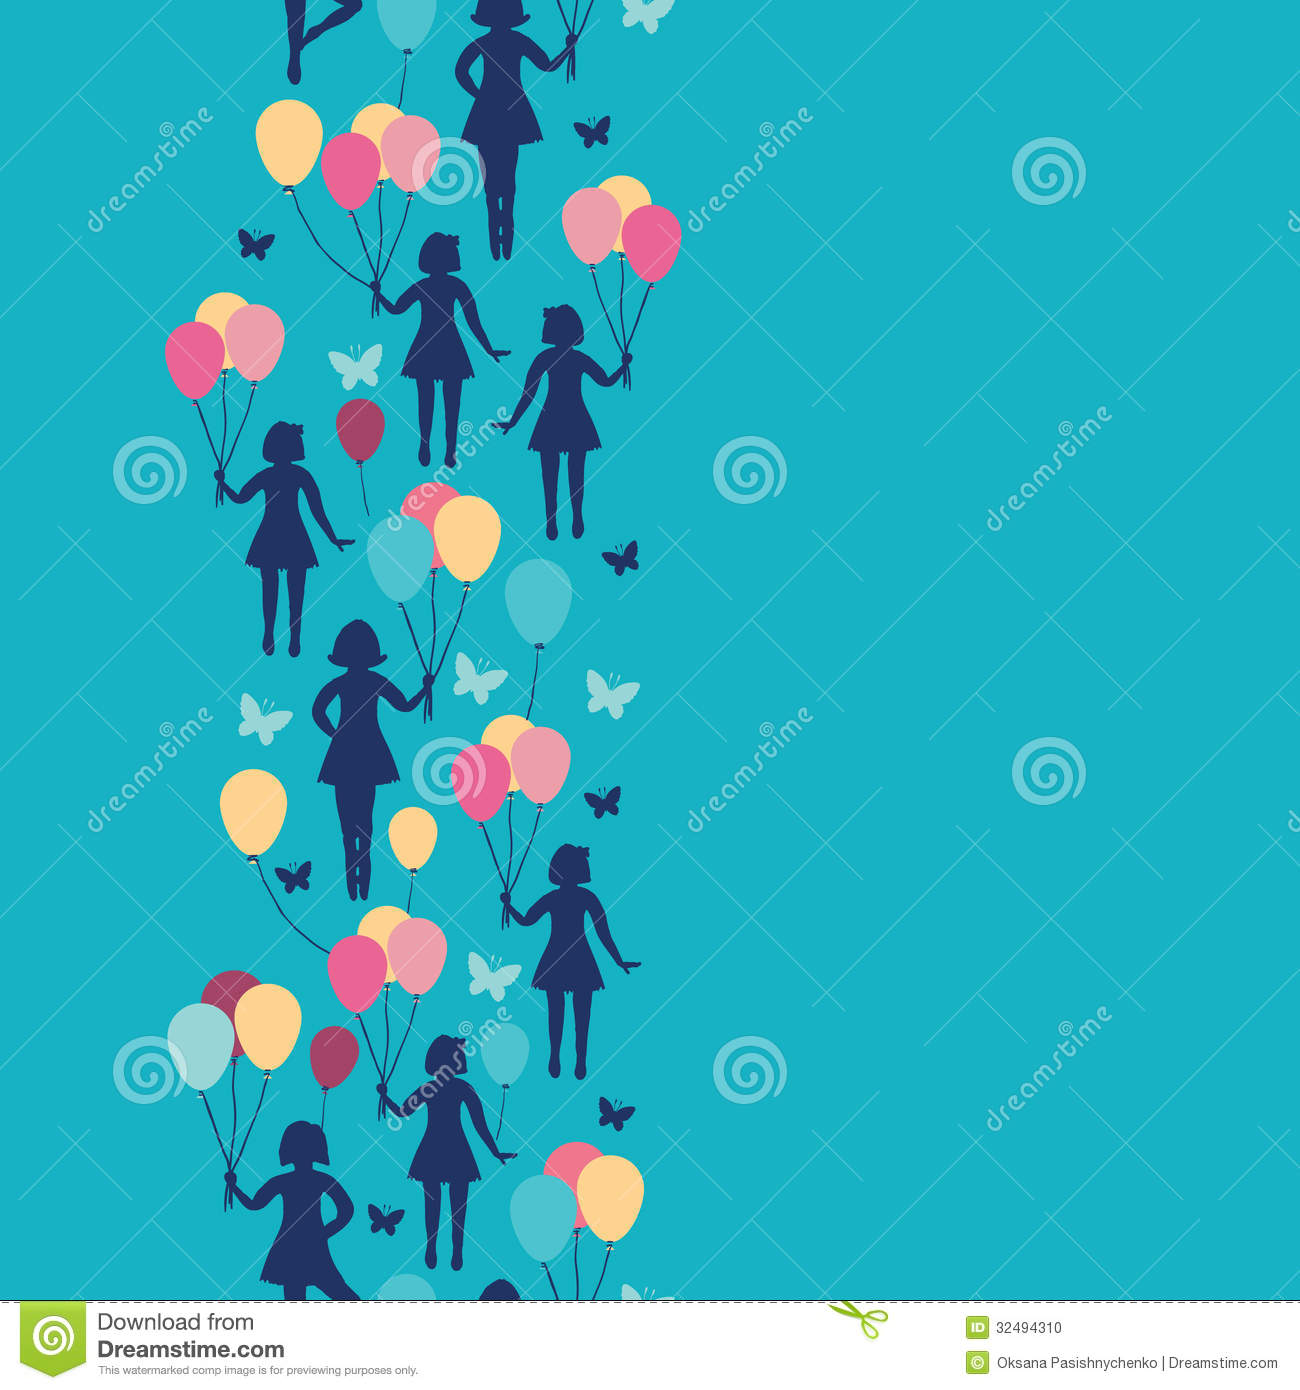 birthday balloon border clip art MEMES